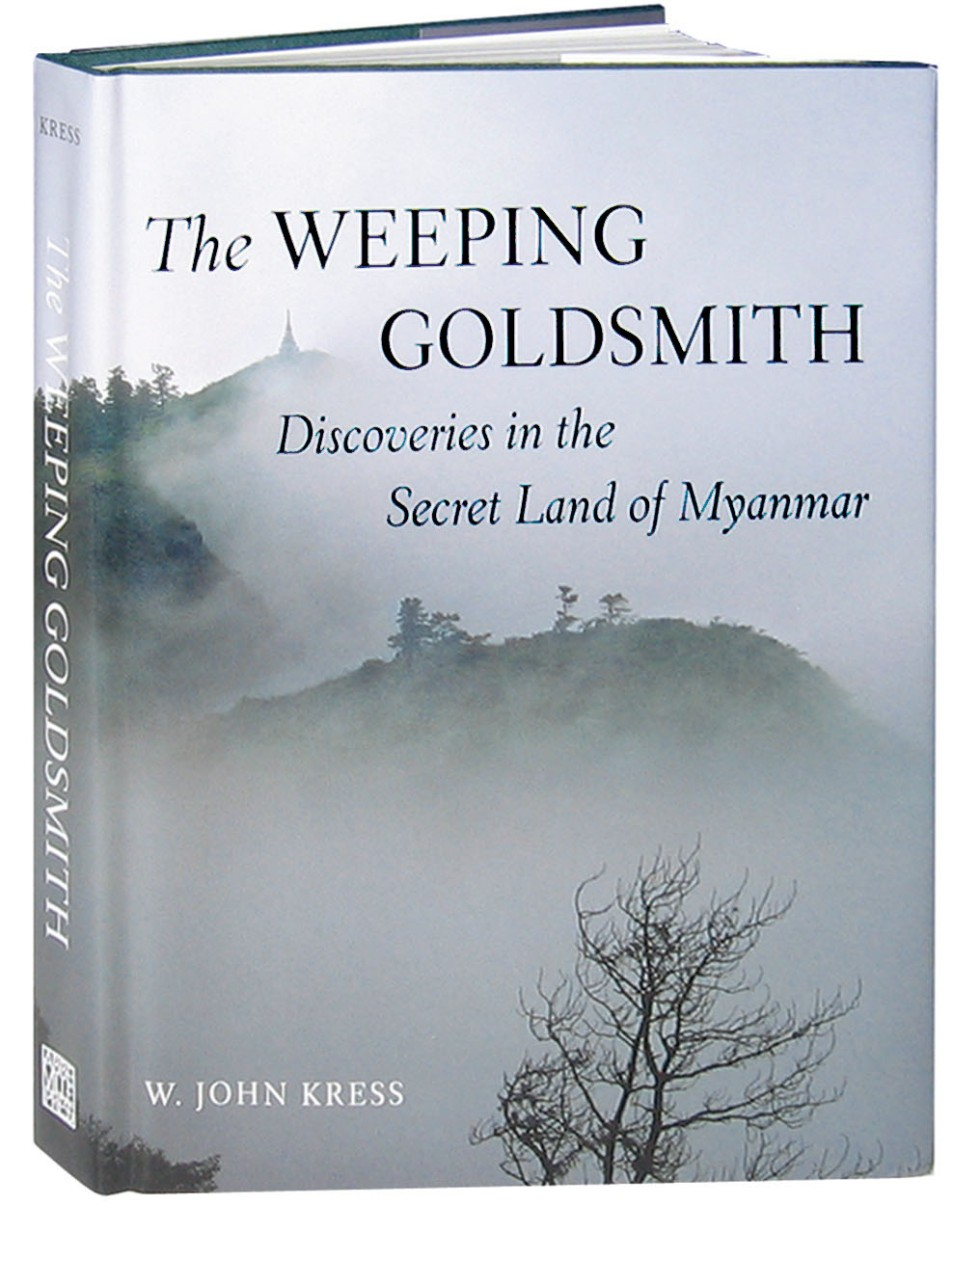 The Weeping Goldsmith, Discoveries in the Secret Land of Myanmar, John Kress